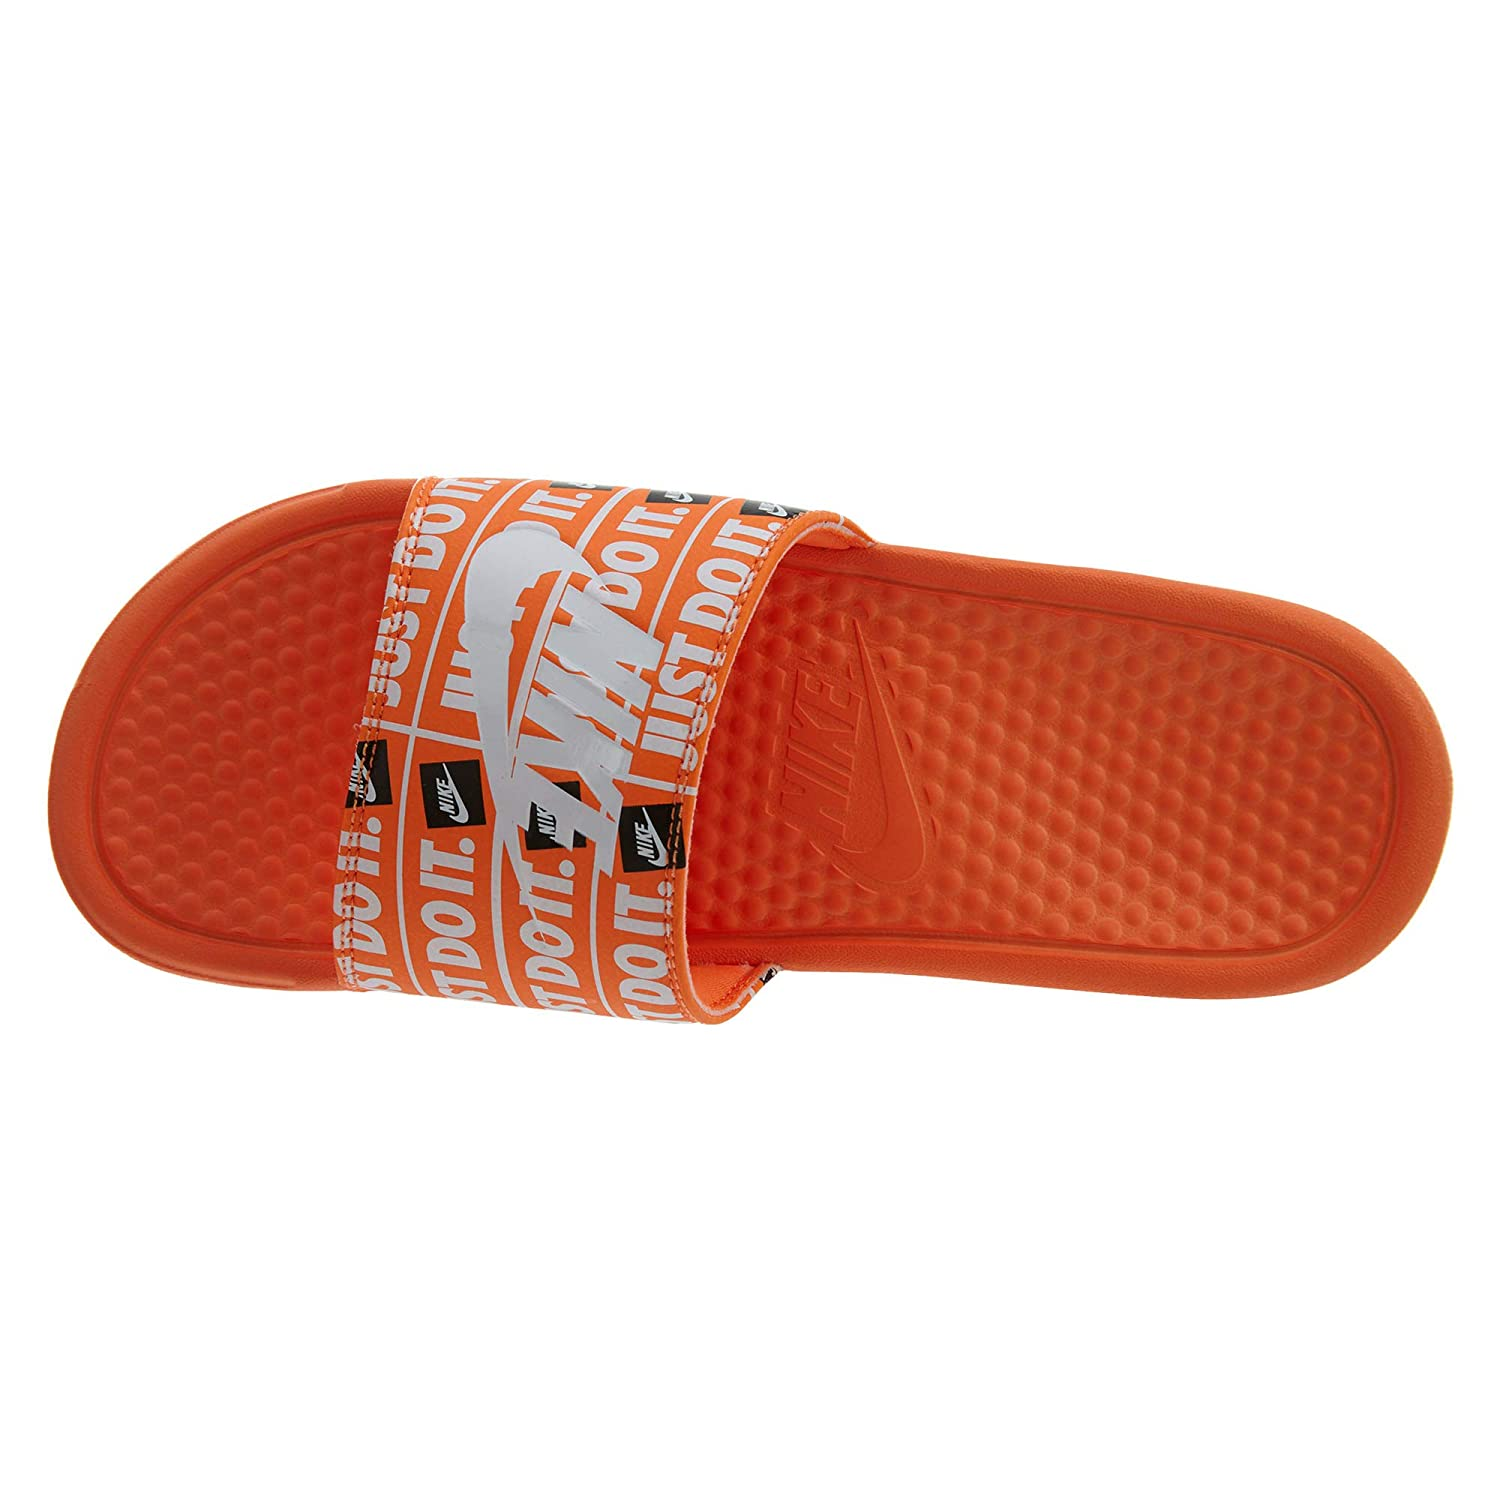 abca9989d367 Nike Benassi JDI Print Mens 631261-800 Size 8  Amazon.ca  Shoes   Handbags